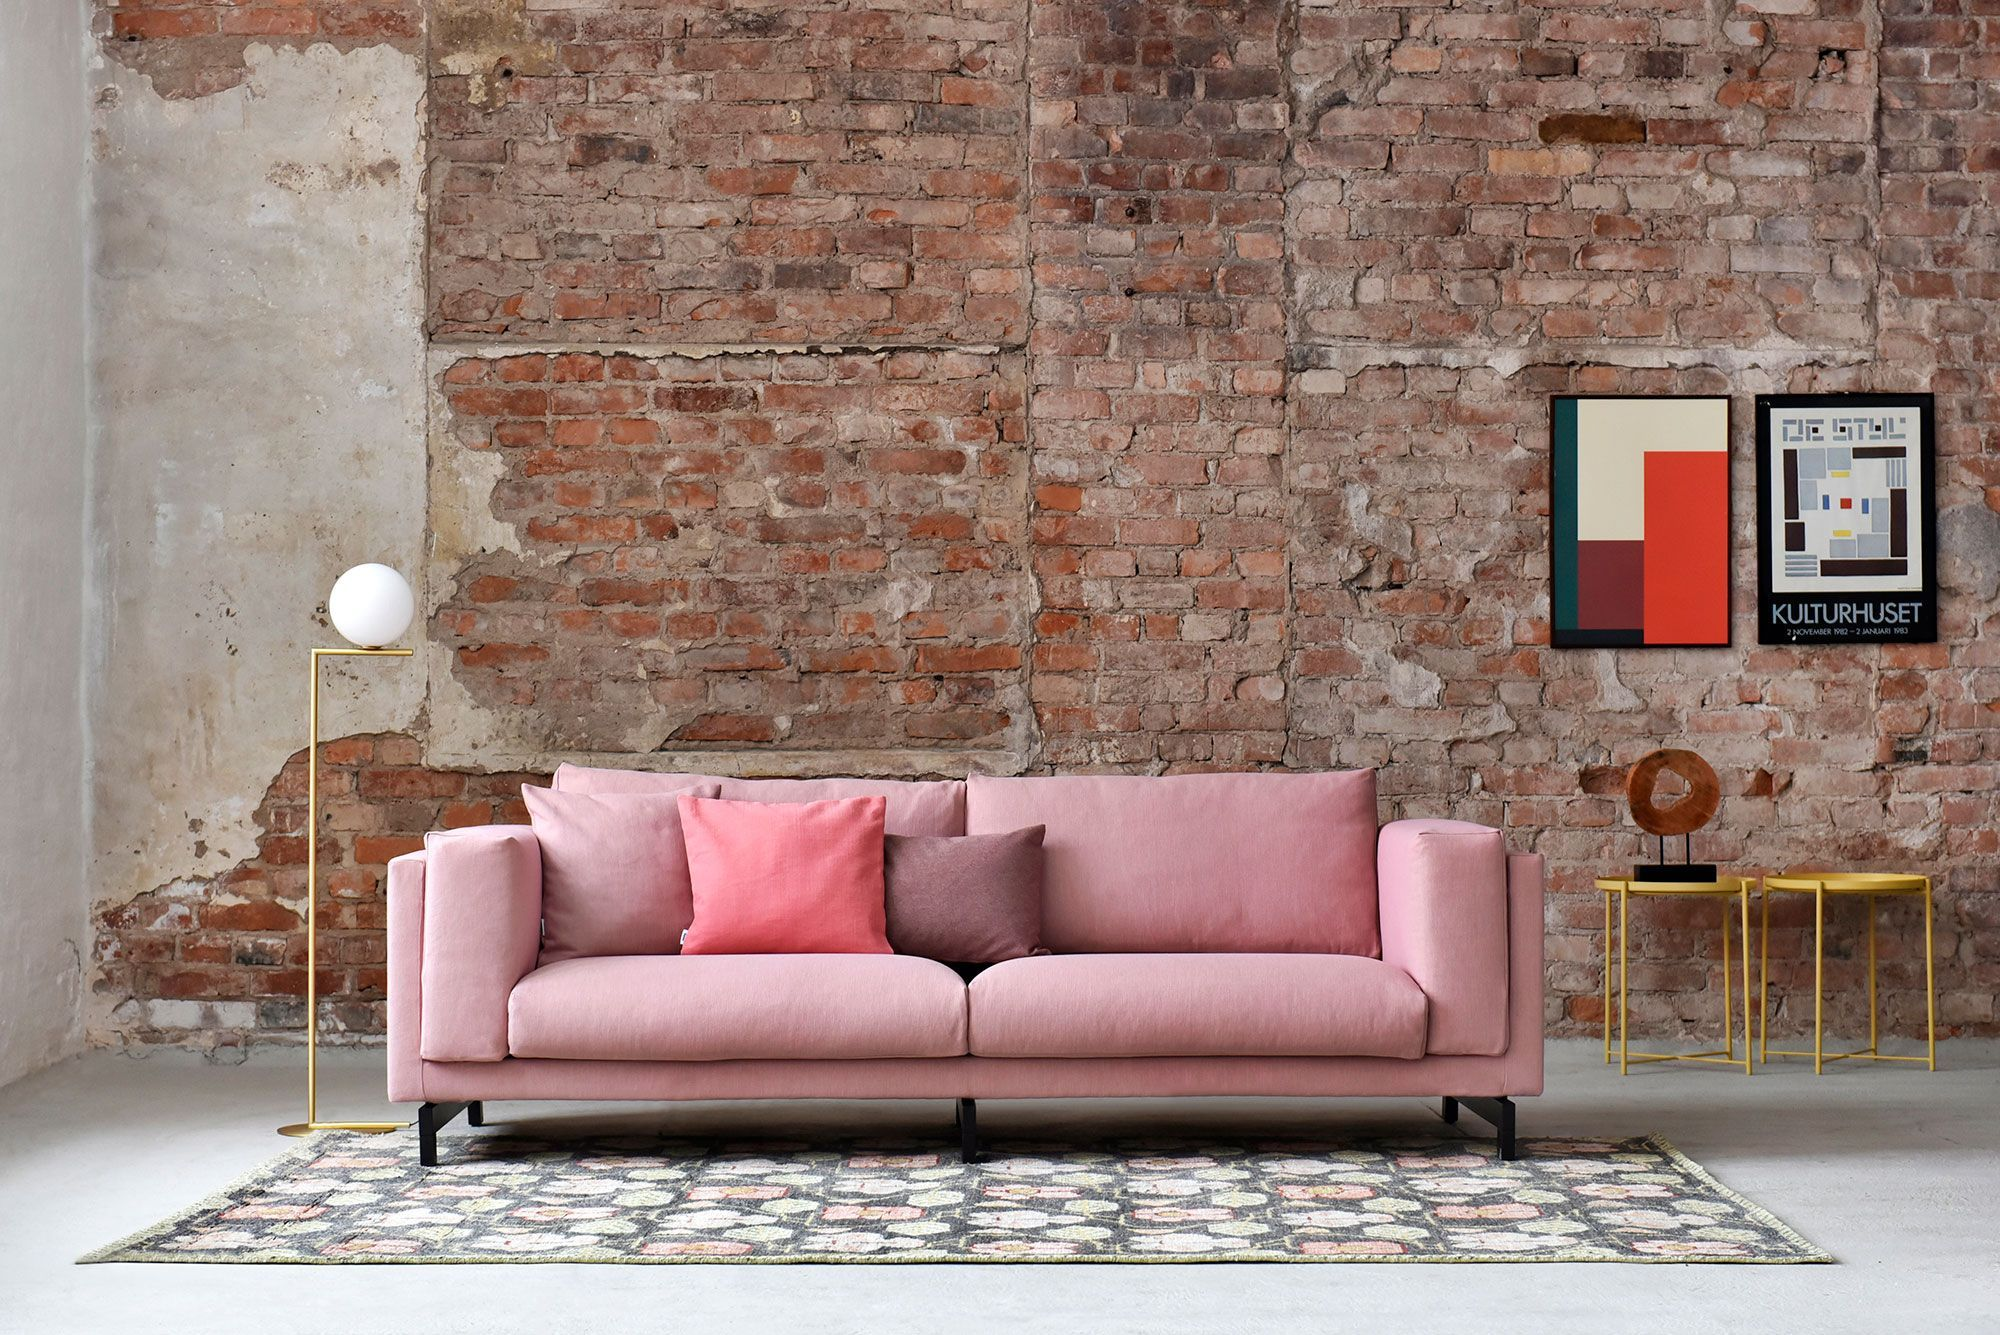 Pin En Living Room Ideas #pink #couch #living #room #ideas